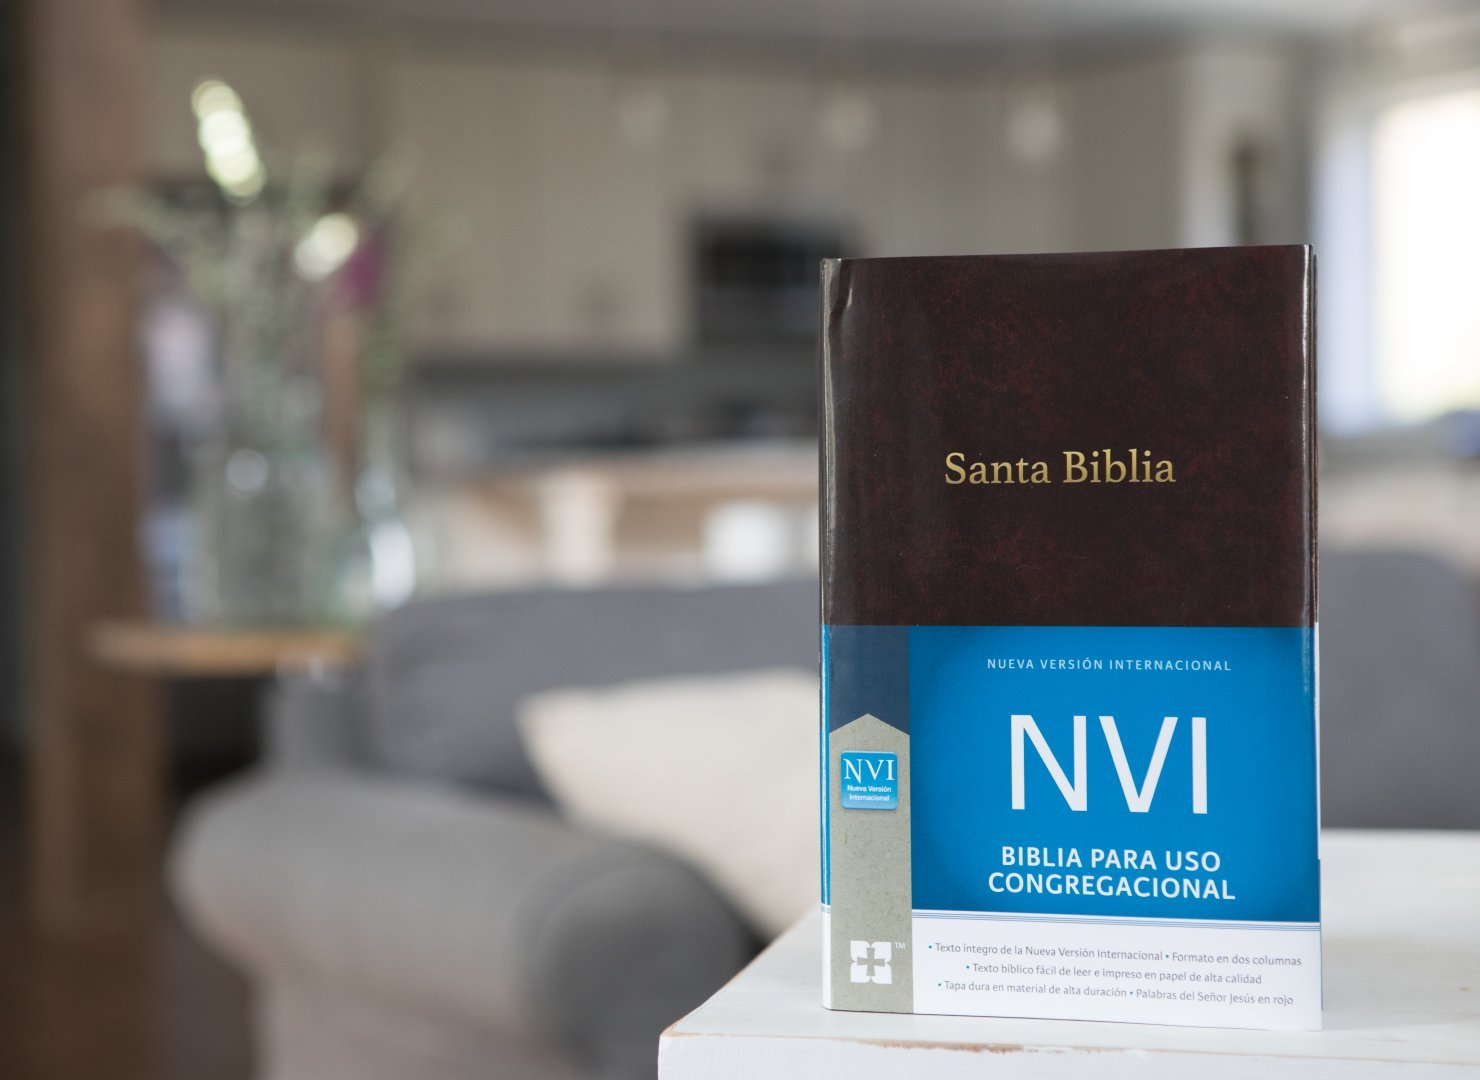 Santa Biblia Congregacional NVI - Tapa Dura Vino (Spanish Edition): NVI-Nueva Version International: 9780829768404: Amazon.com: Books